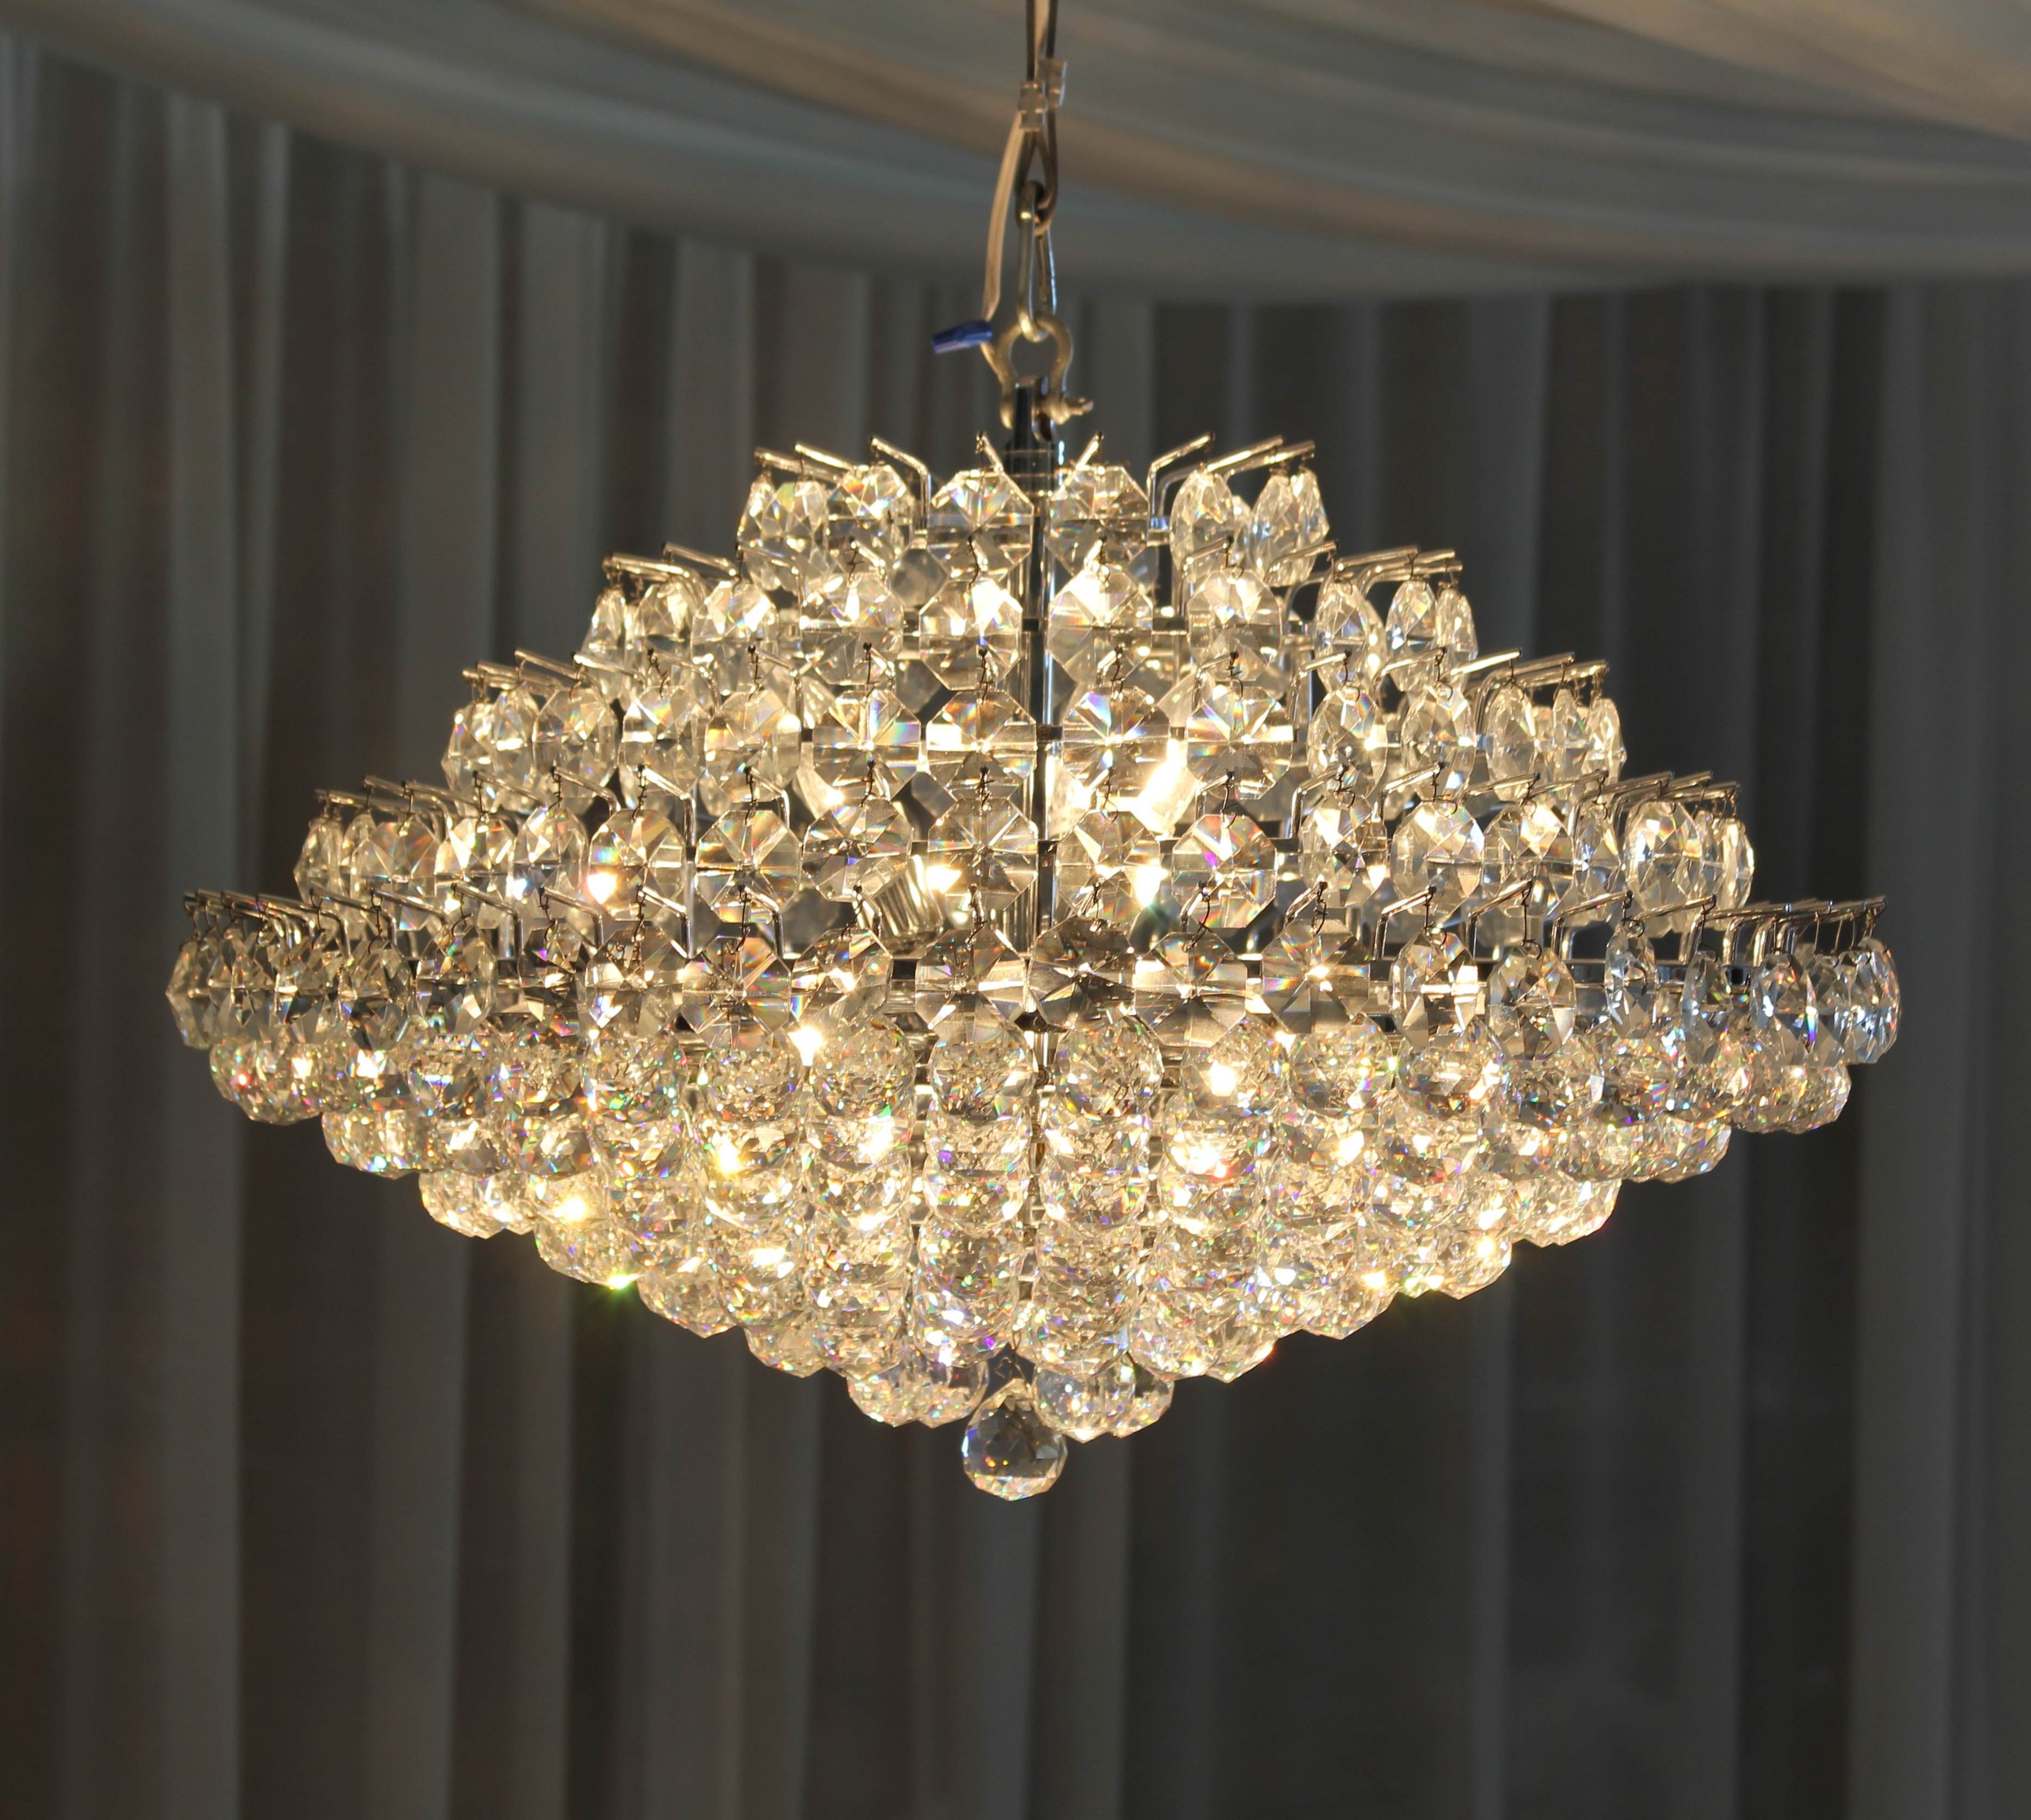 Most Recent Unusual Chandeliers Within Light : Crystal Chandelier Cristal Town Country Event Rentals (View 3 of 15)